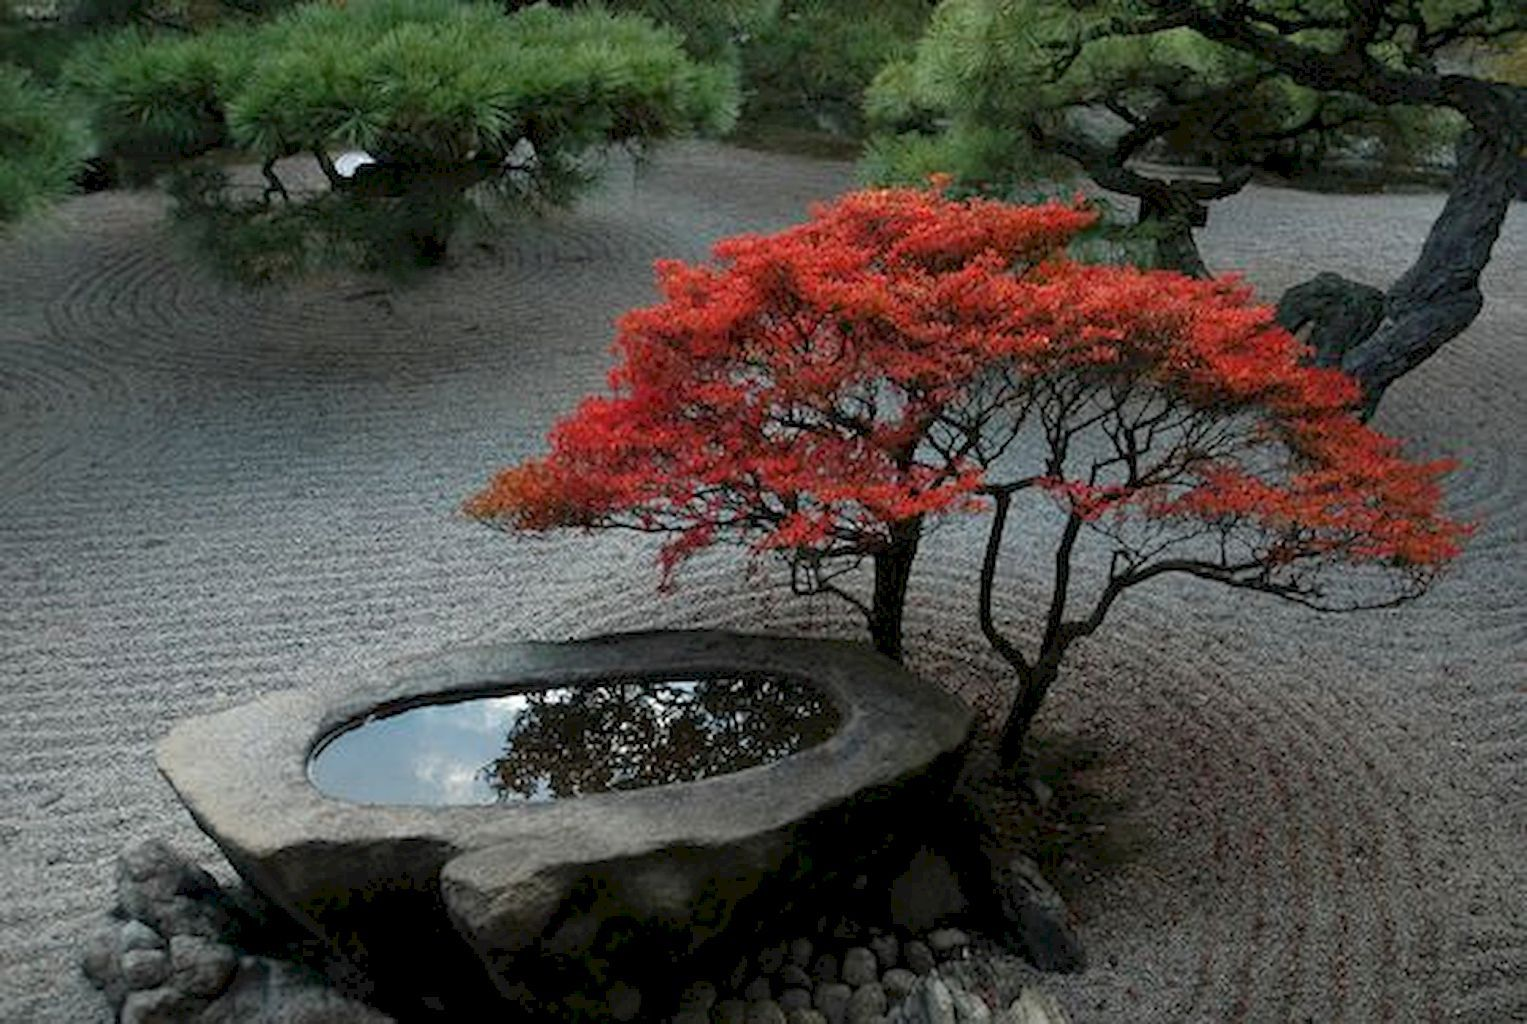 0ceb7804d97b88565ce666fc7cf95986 - Japanese Gardens Right Angle And Natural Form